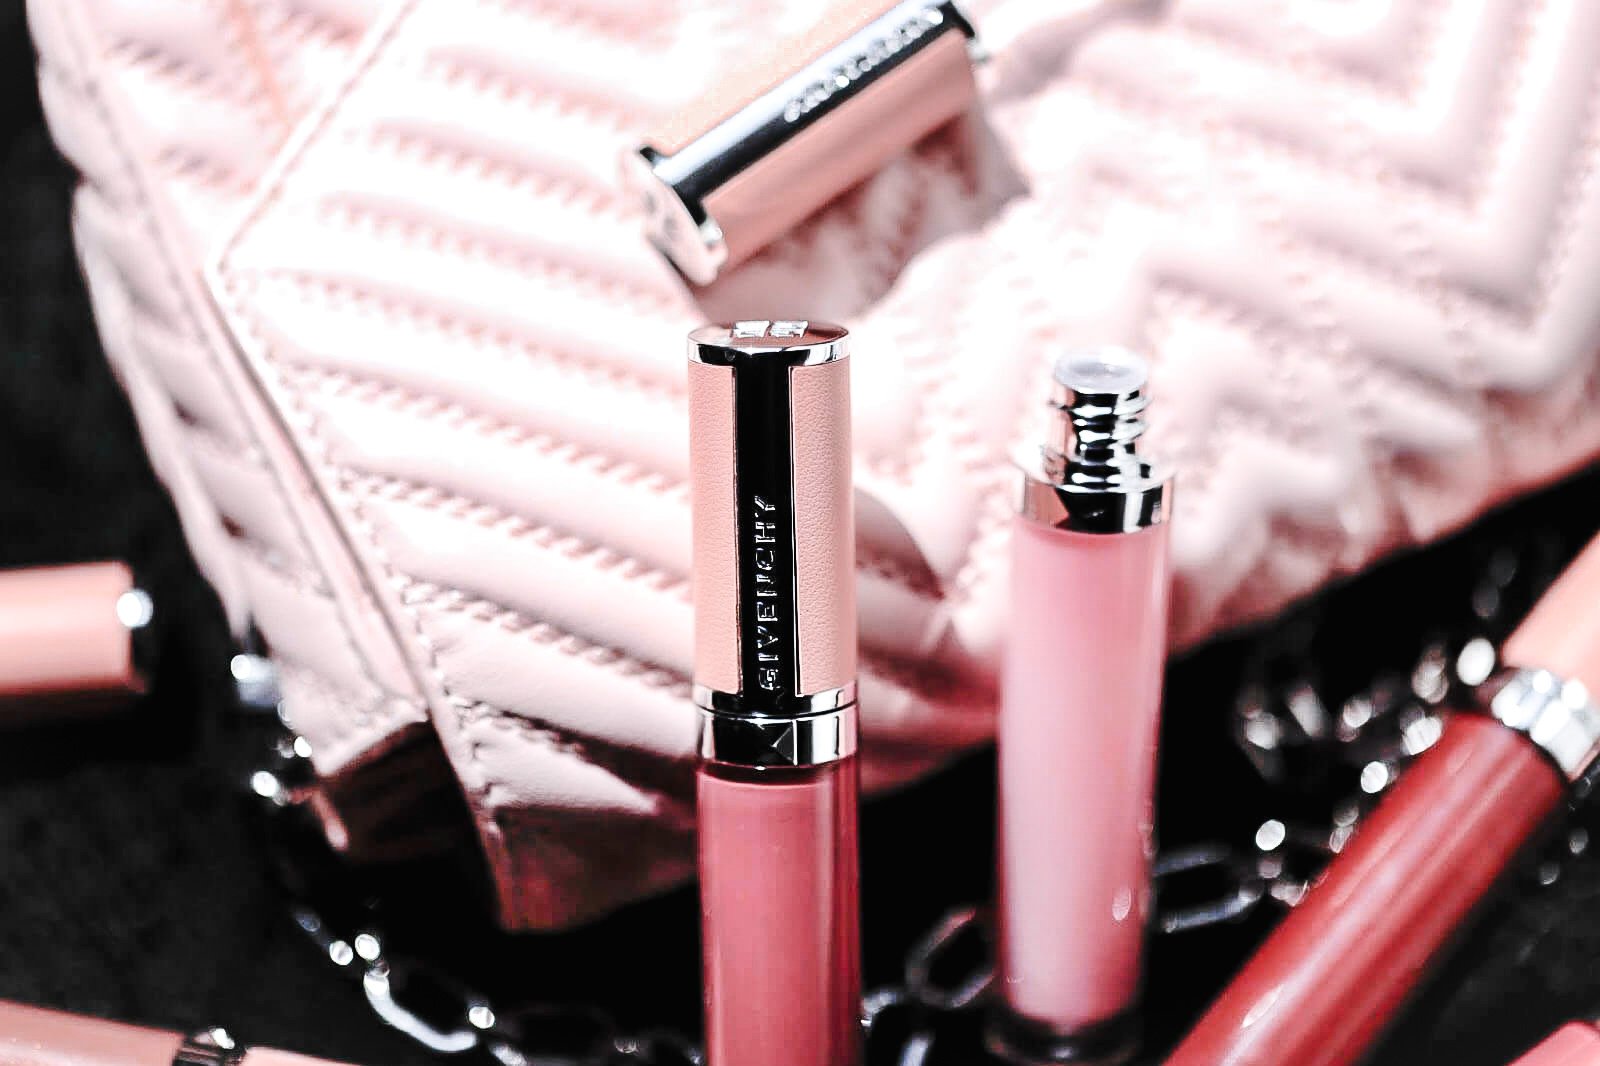 Givenchy Le Rose Perfecto Baume Liquide Avis